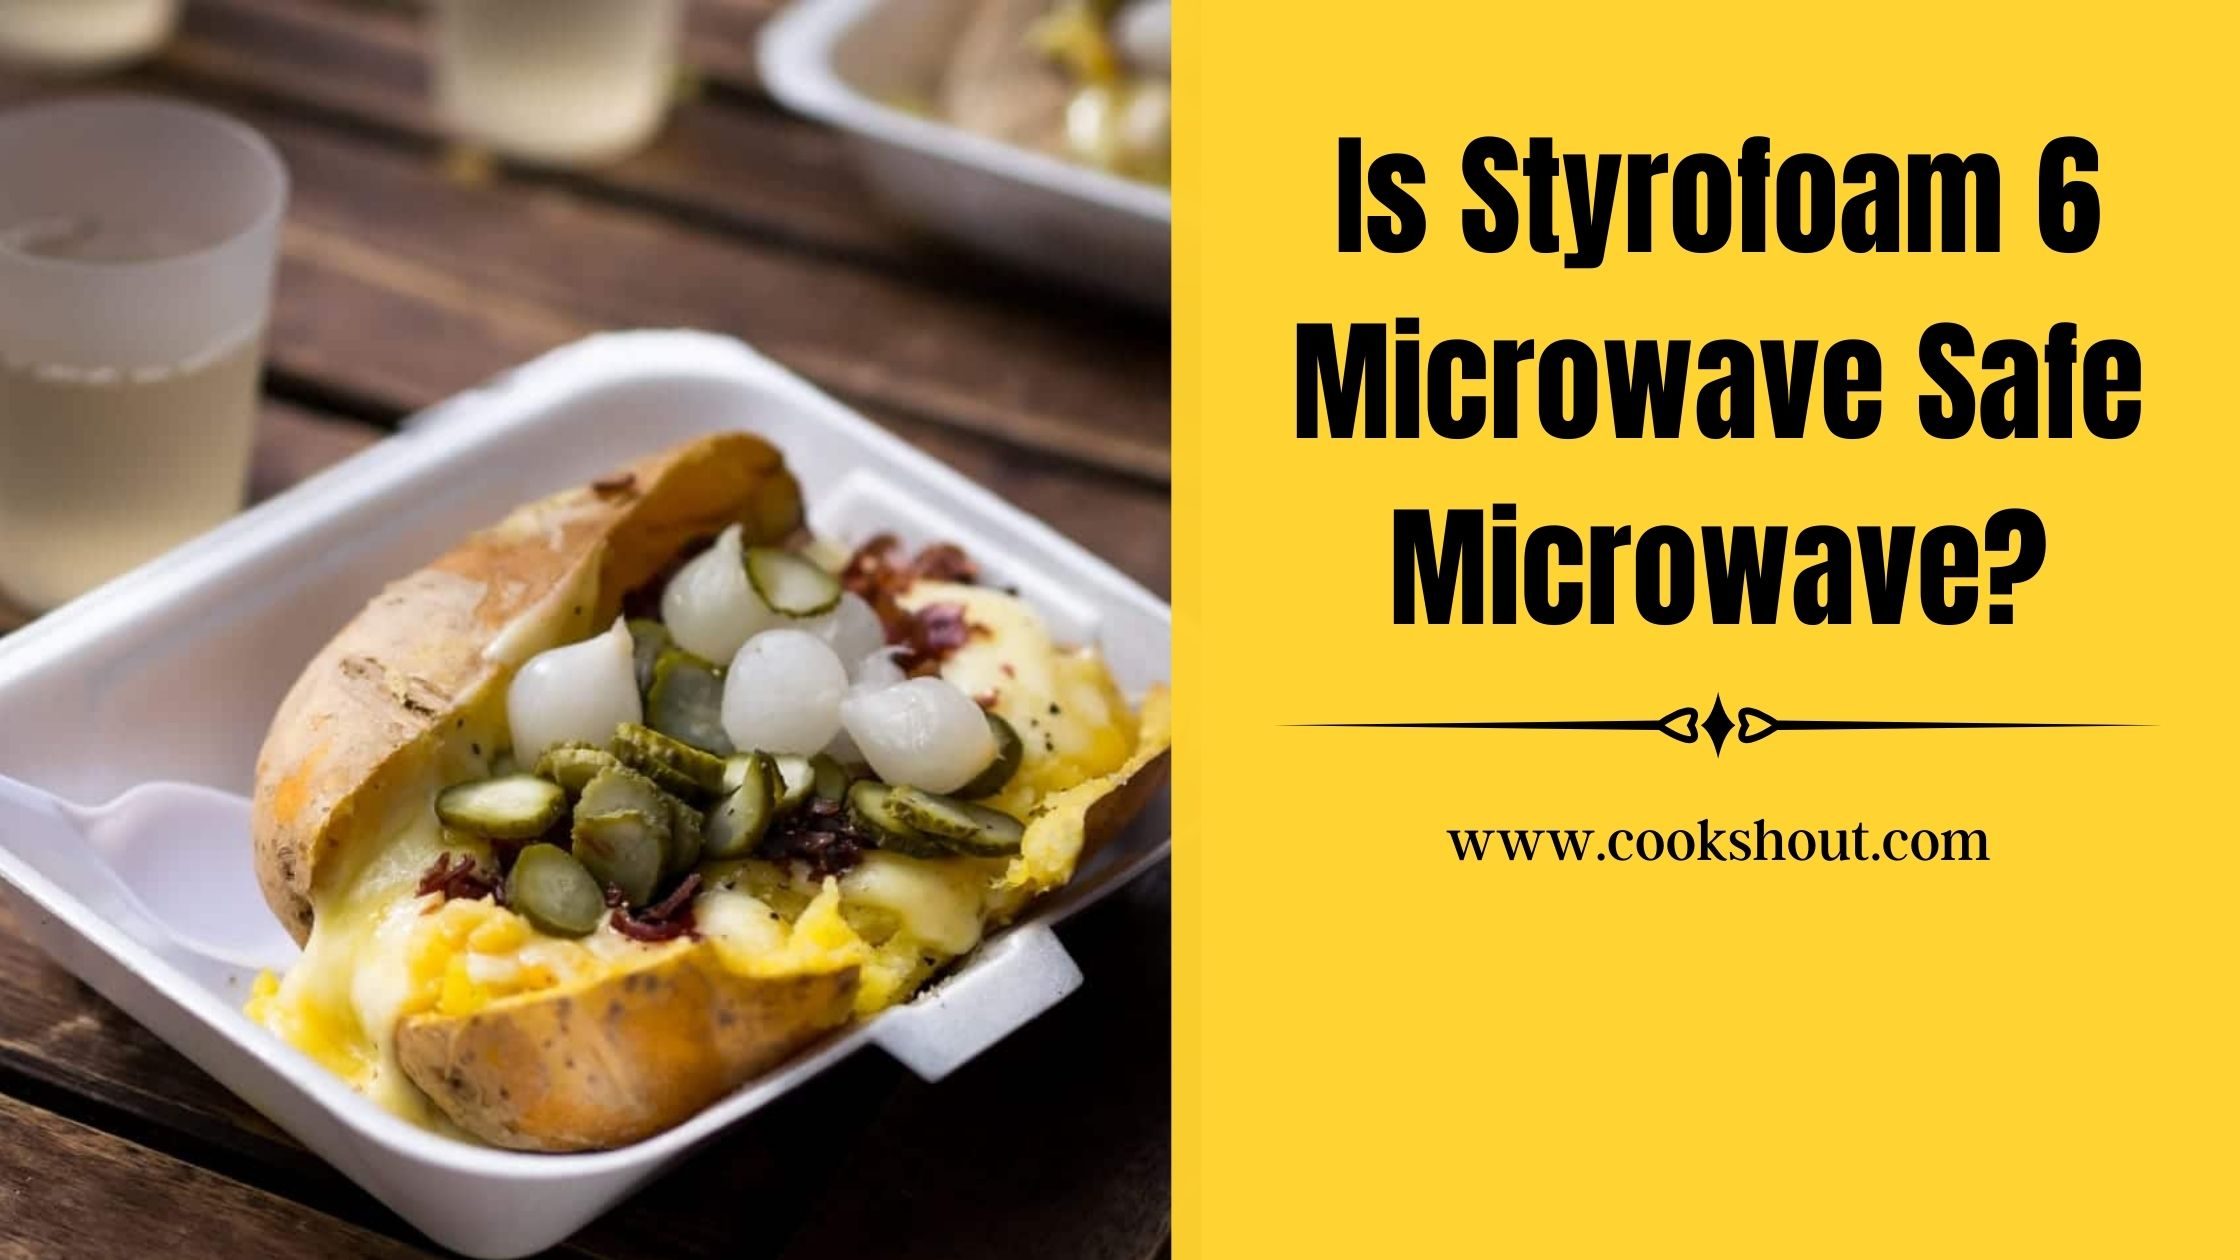 Can you microwave number 6 Styrofoam?